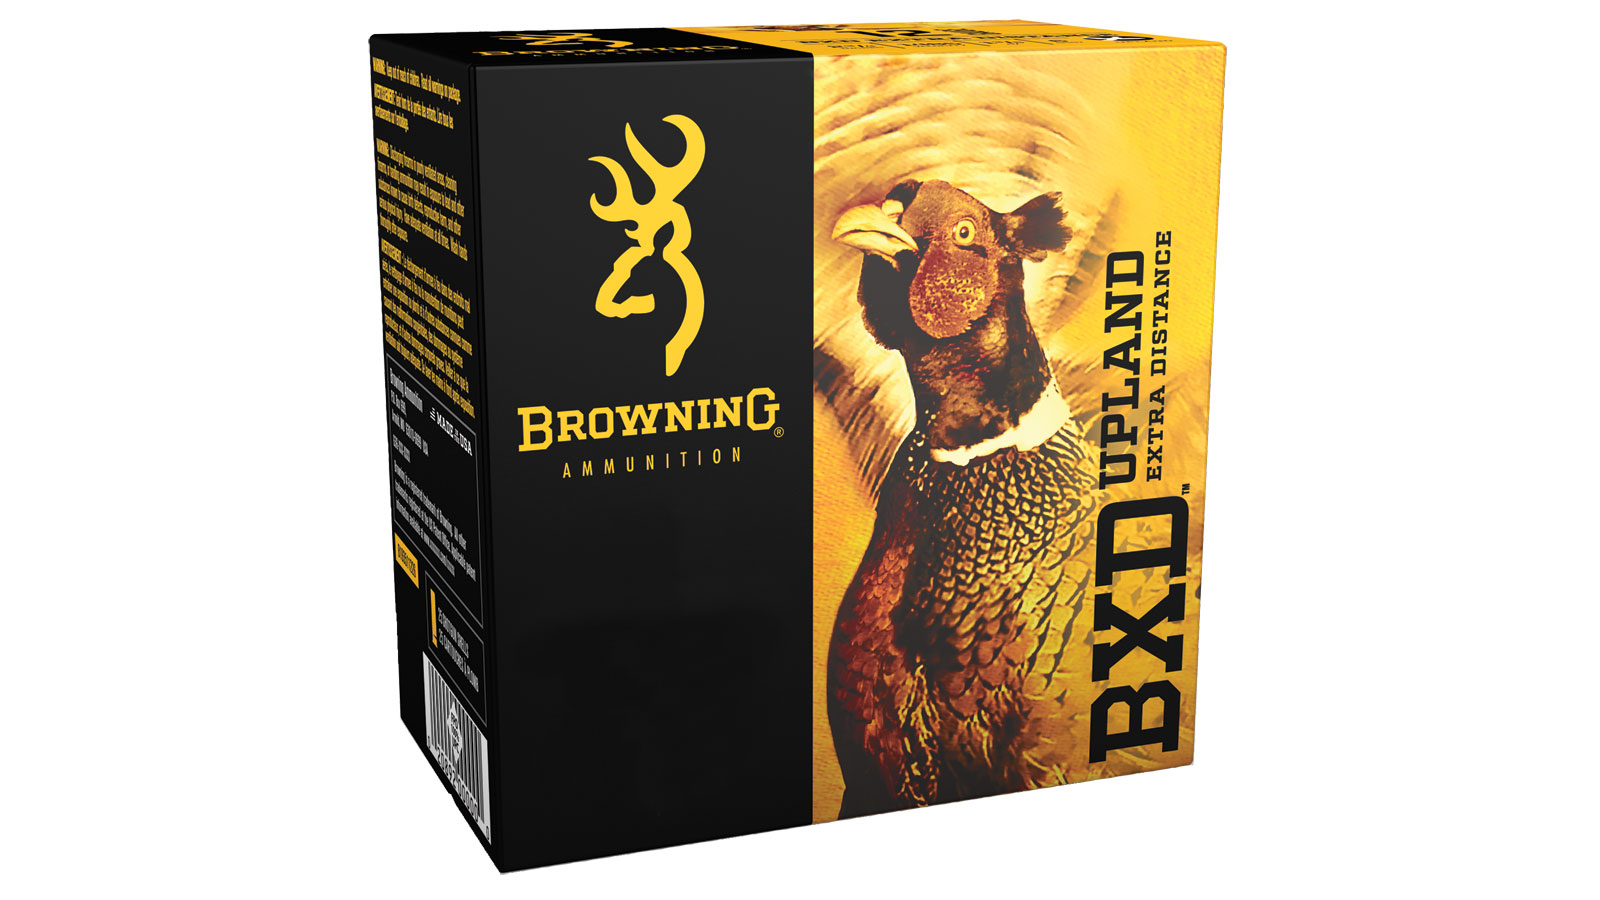 Browning Ammo B193512025 BXD Extra Distance Upland 20 Ga 2.75 1 oz 5 Shot 25 Bx| 10 in.